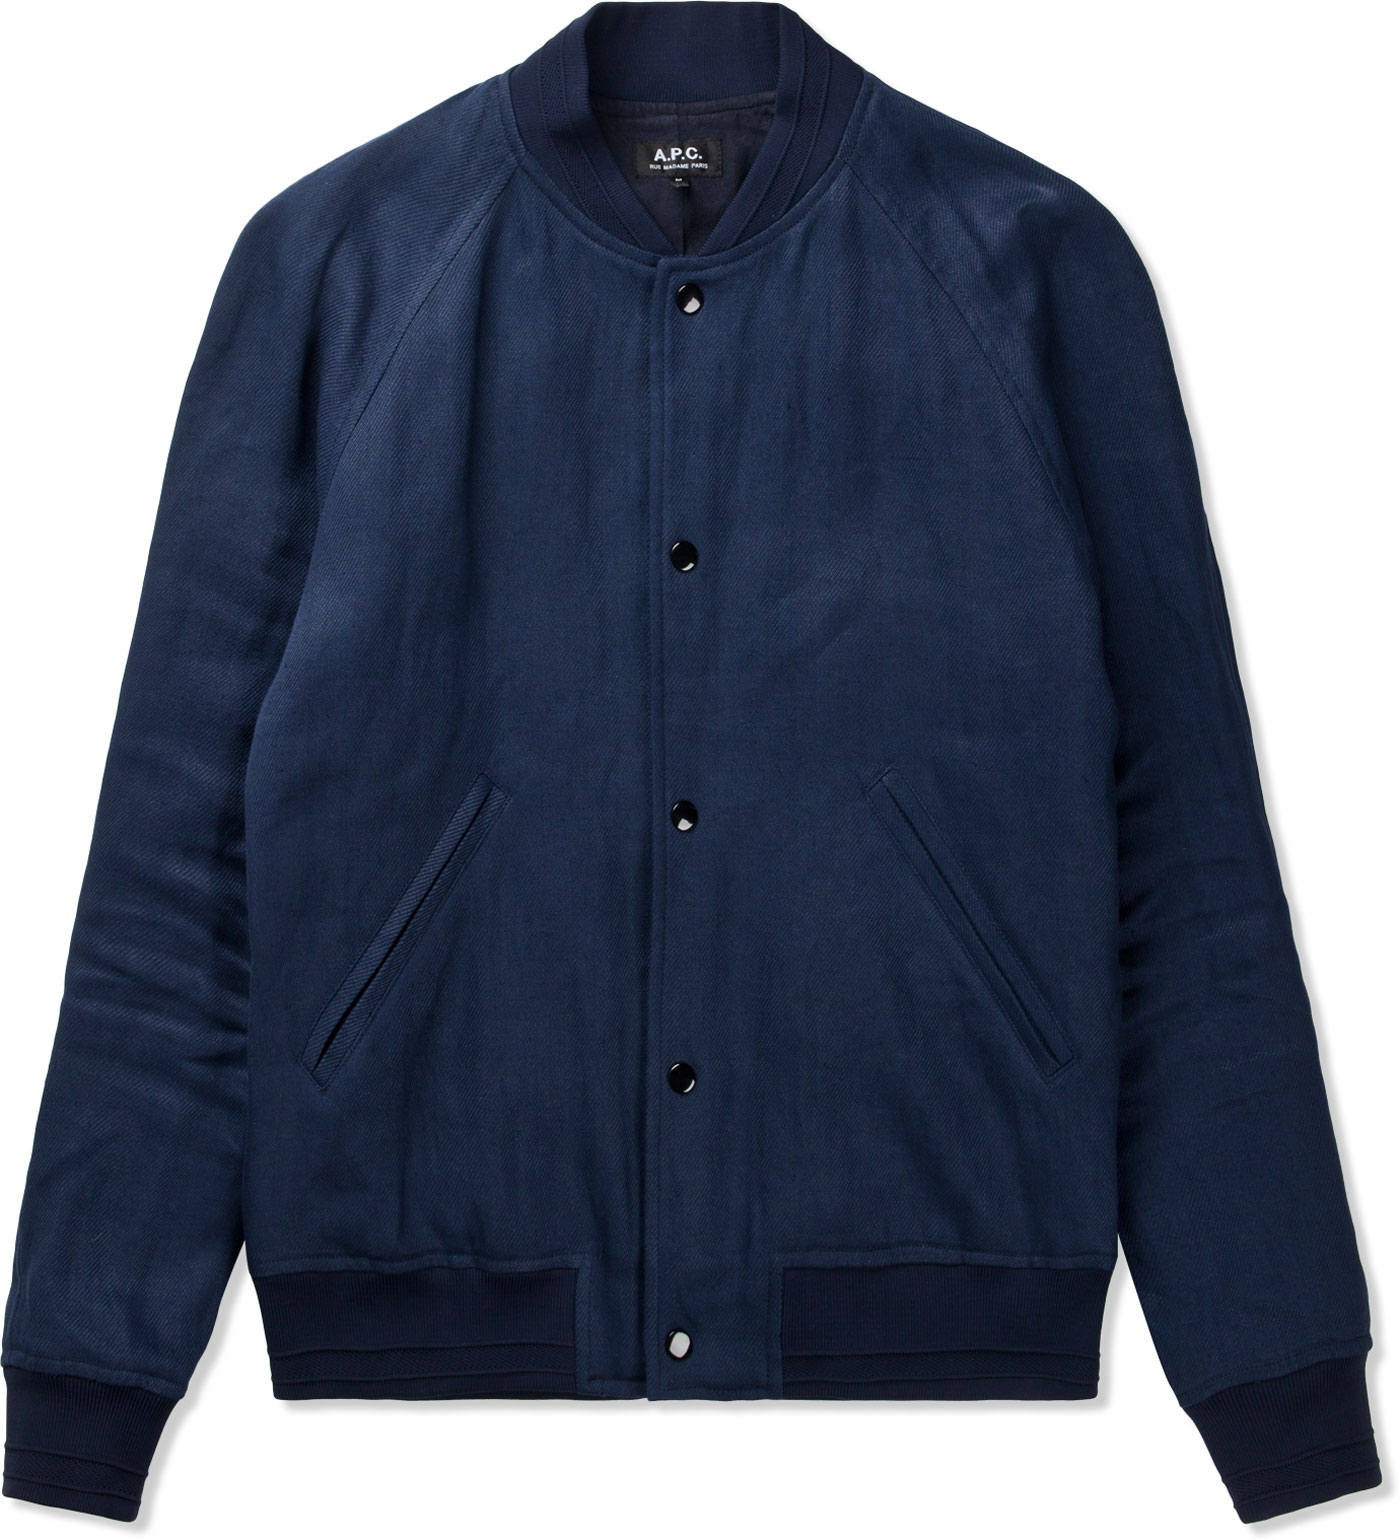 A.P.C. Dark Navy Bomber Jacket